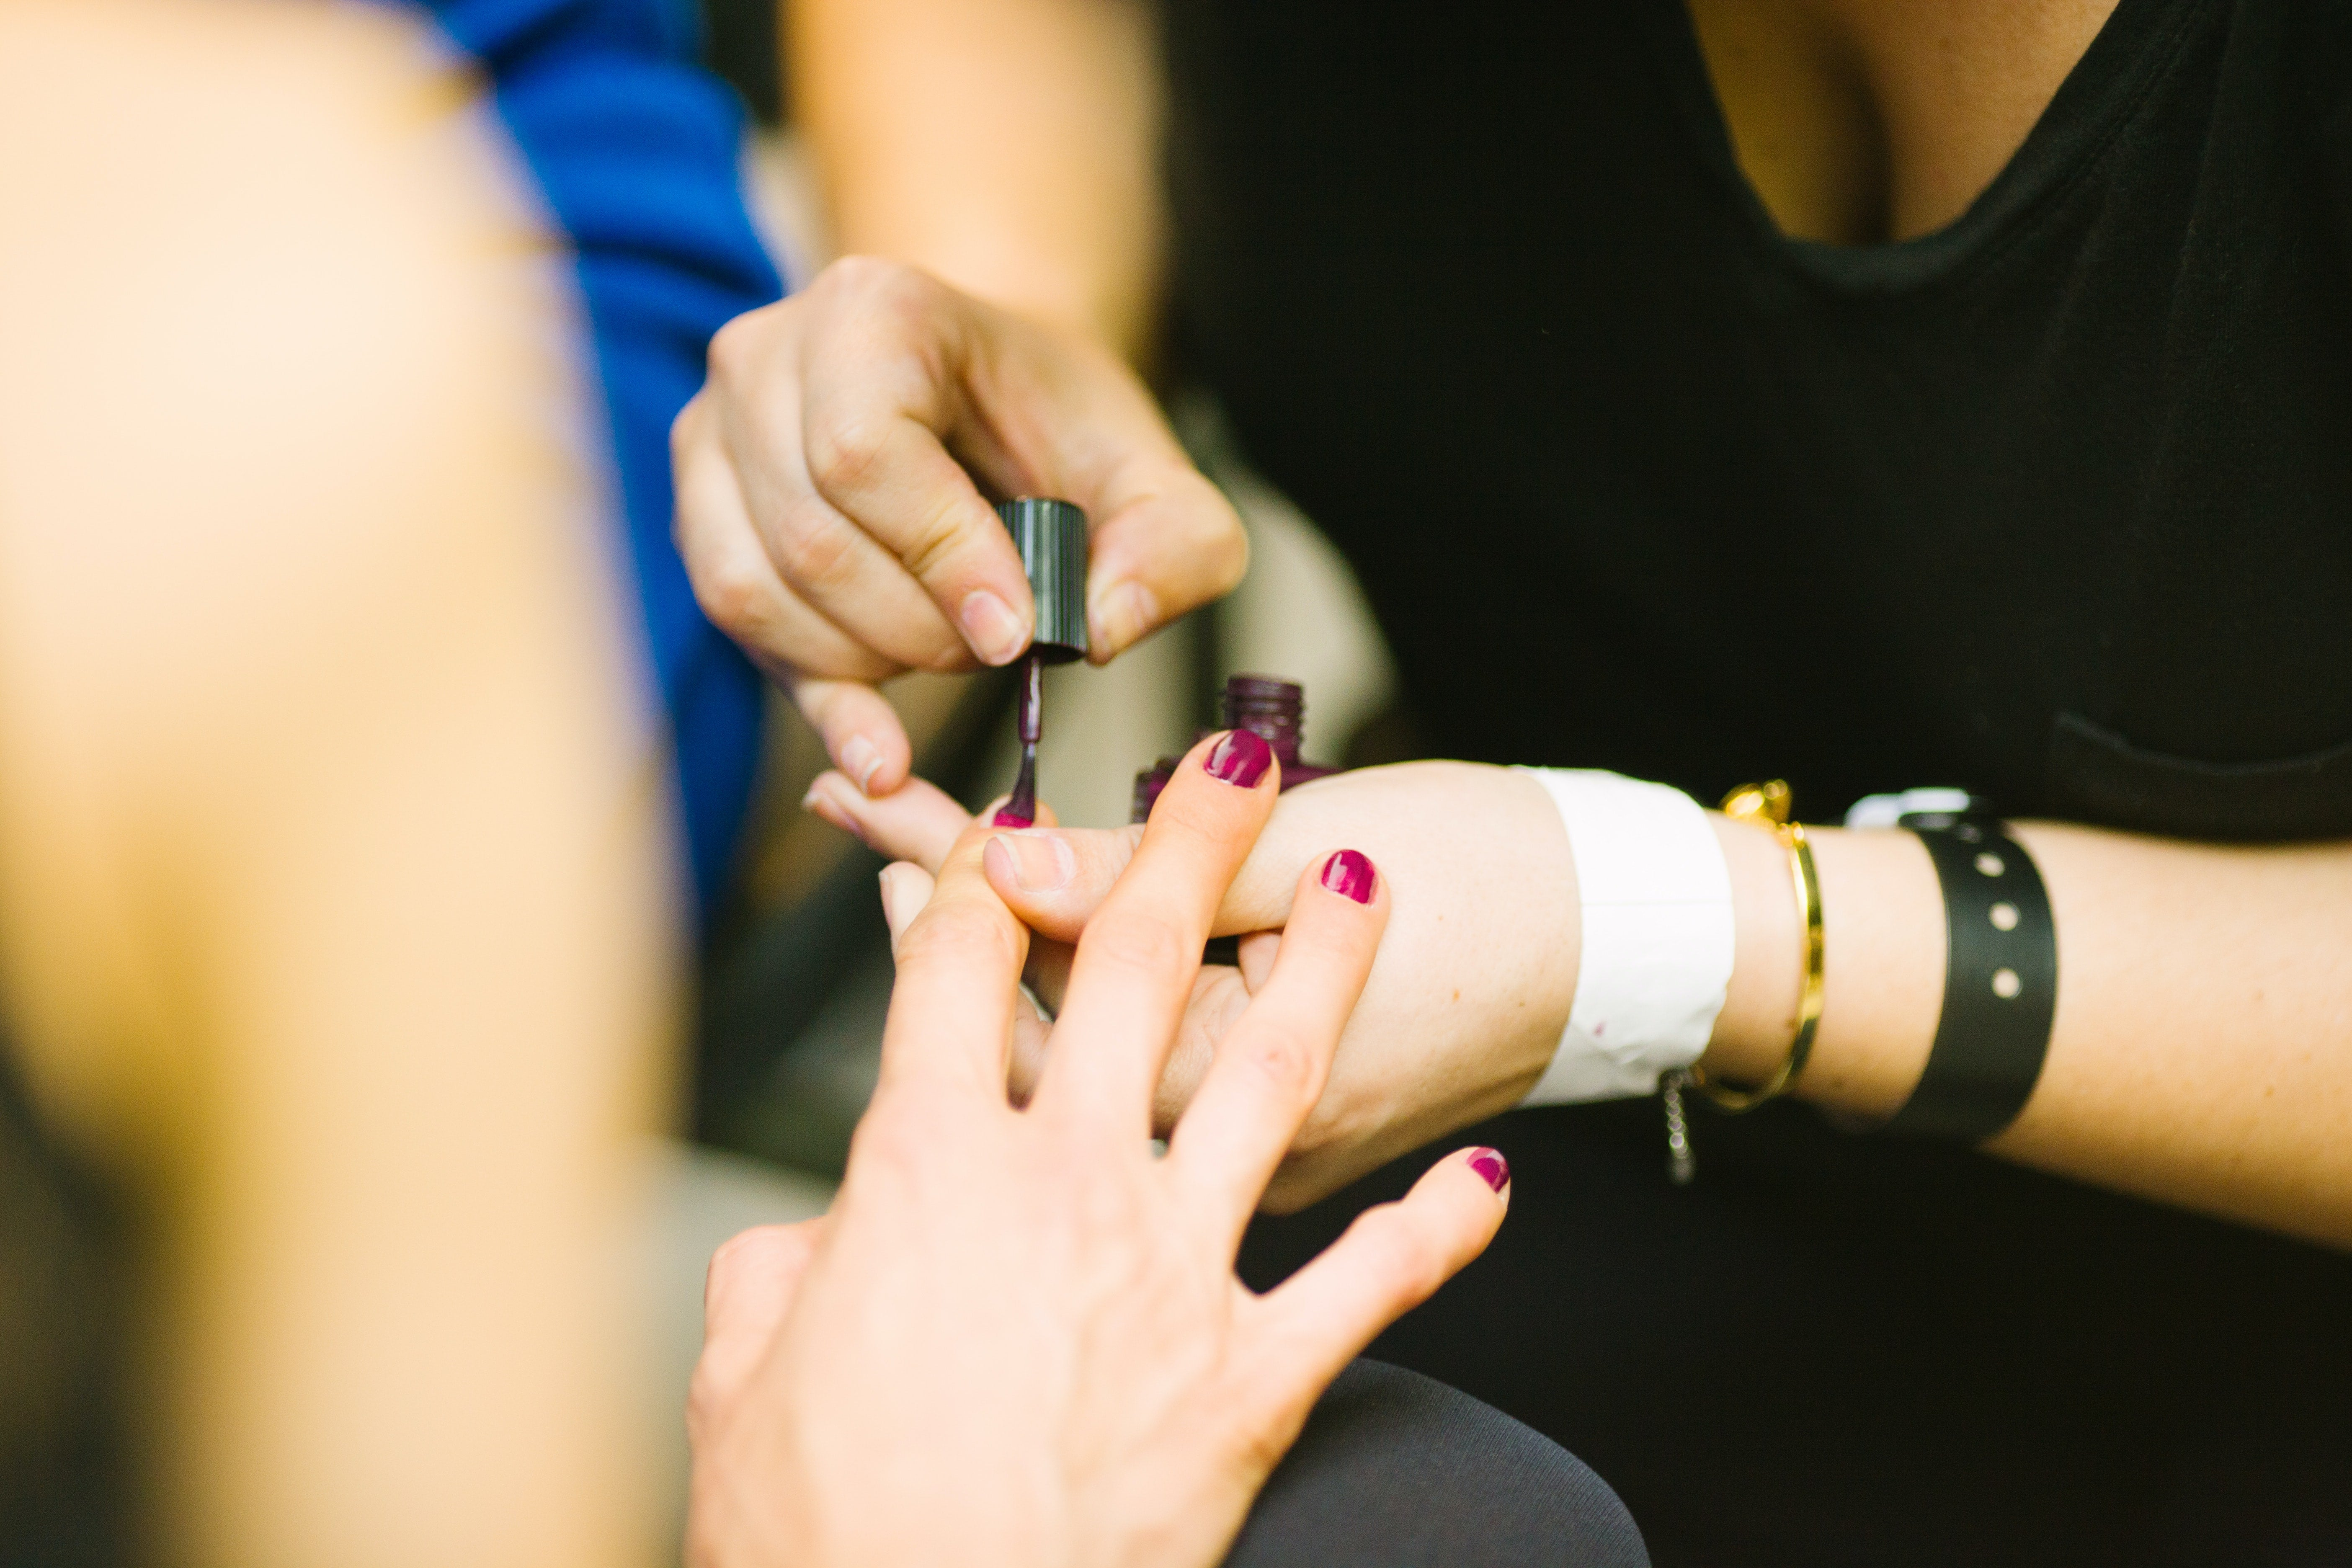 A woman gets her nails painted